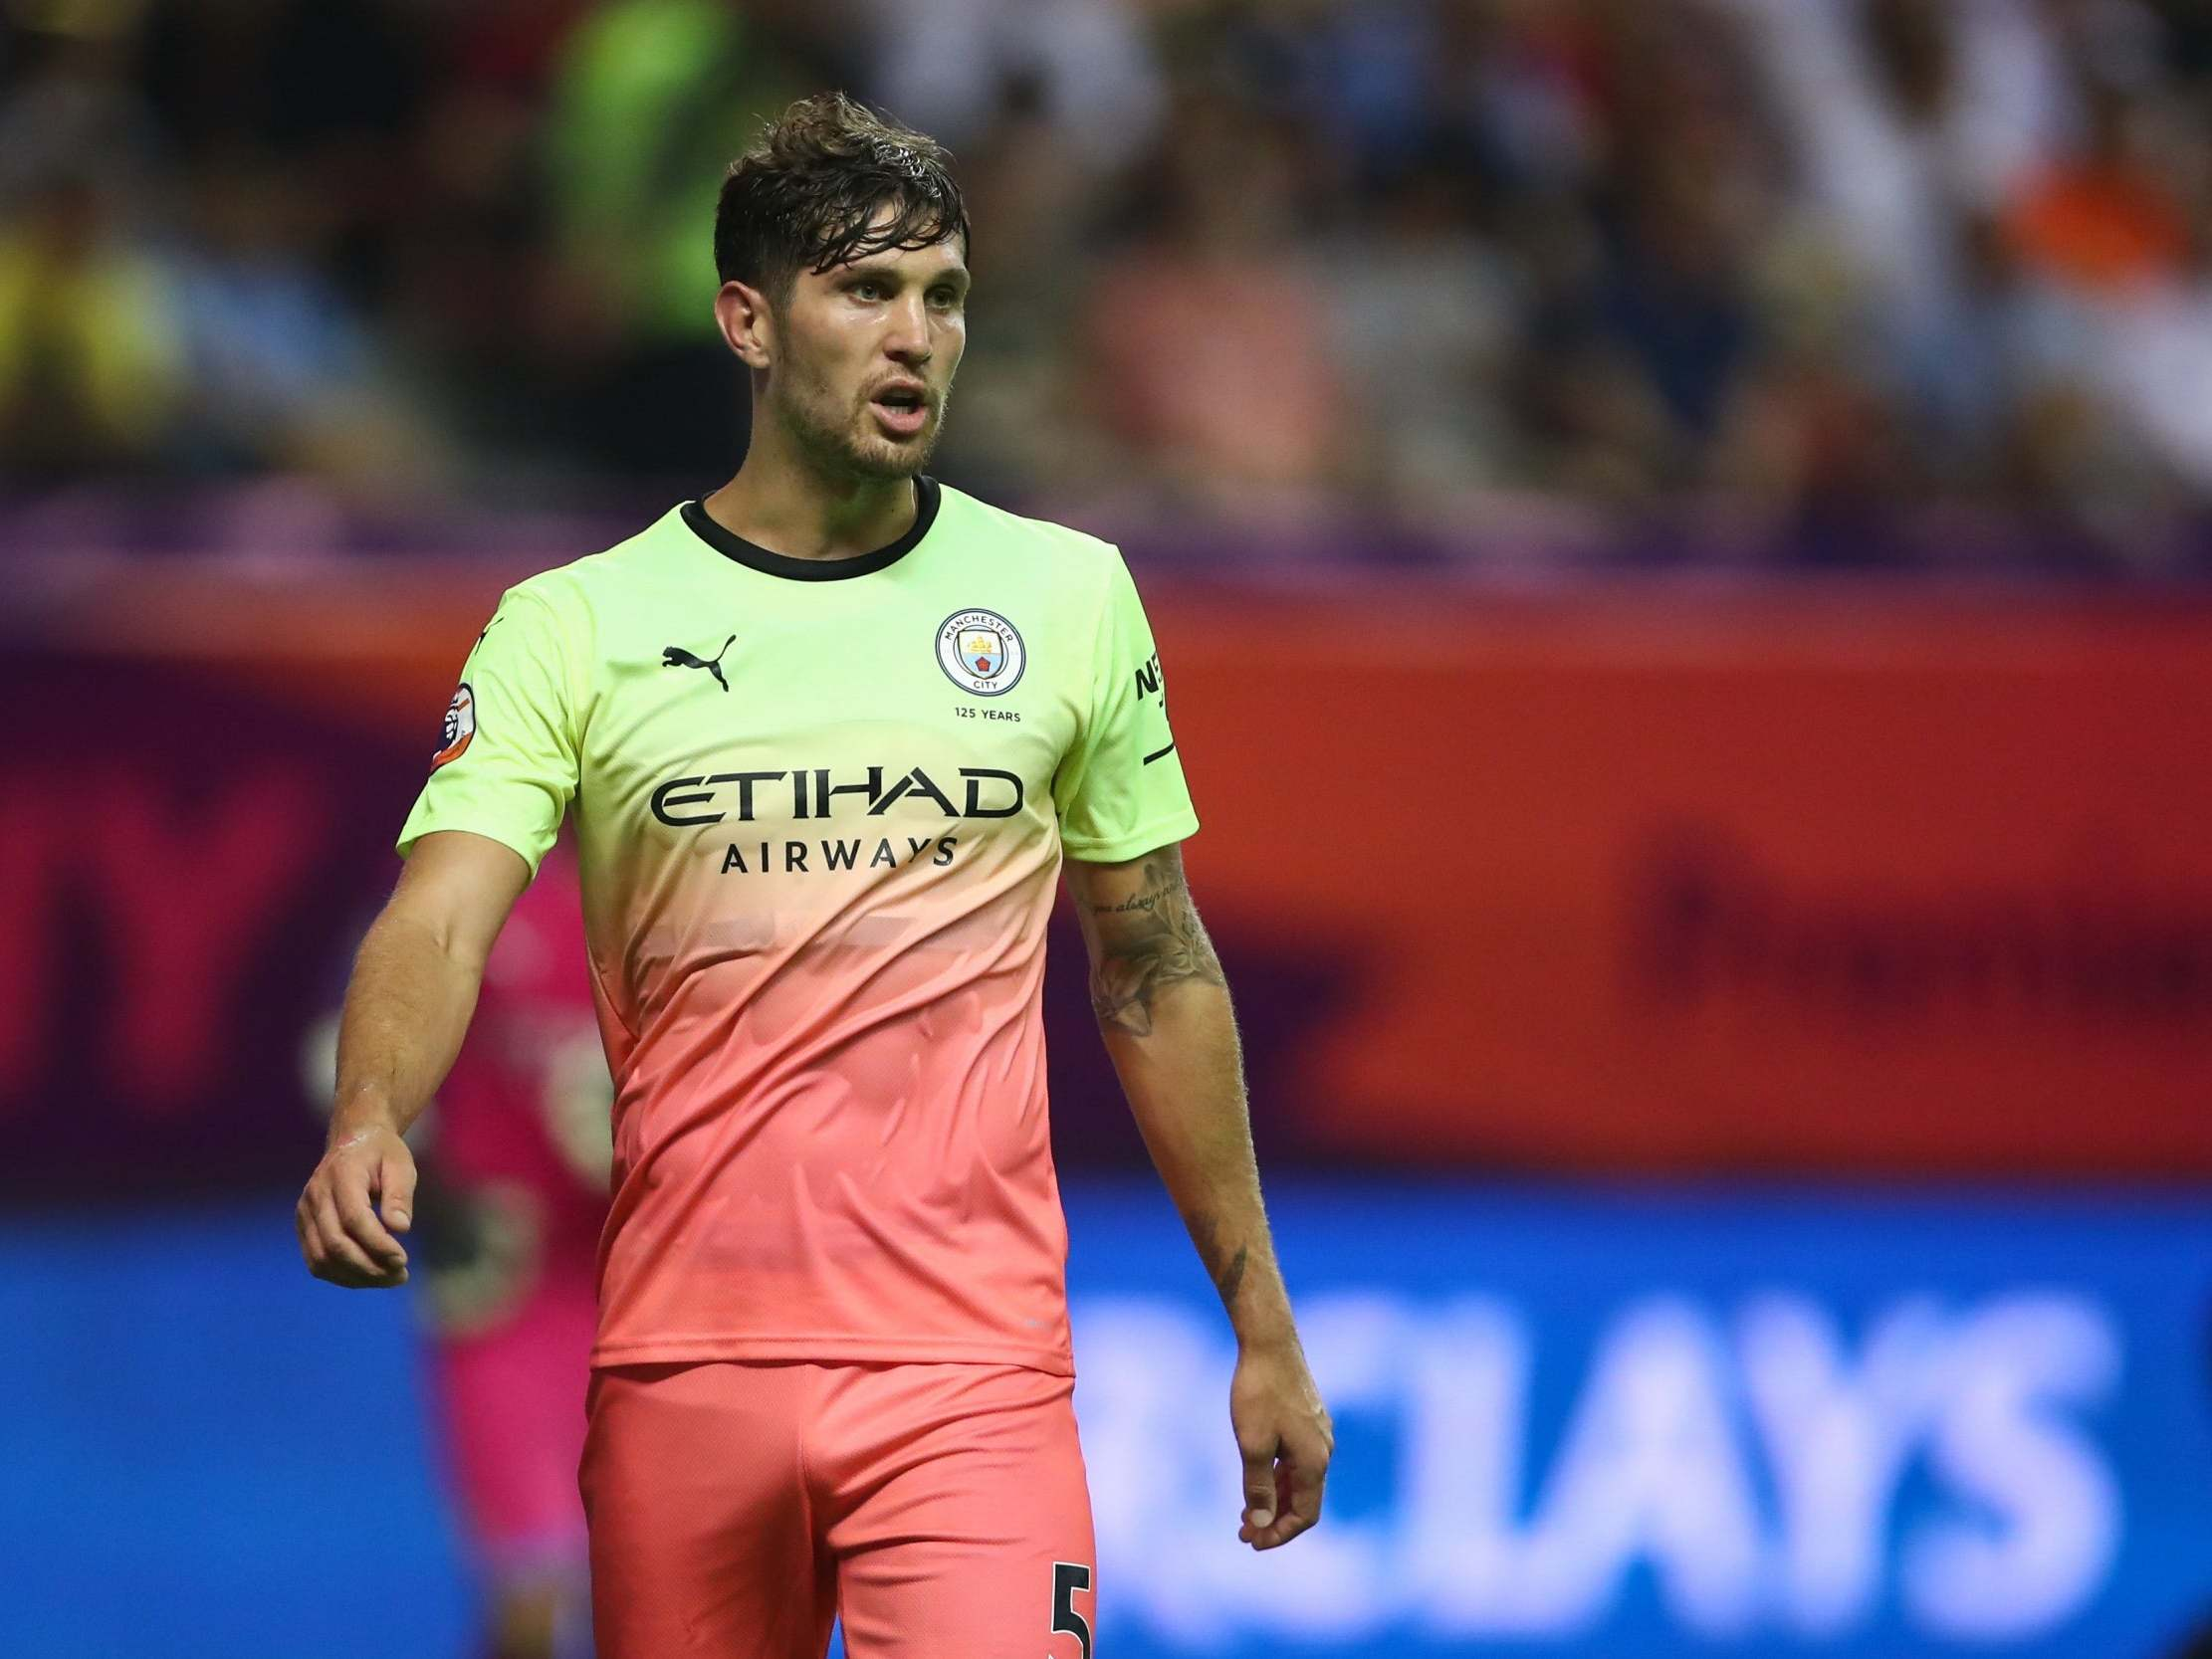 Manchester City news: John Stones ready to fight for first team place after disappointing end to season